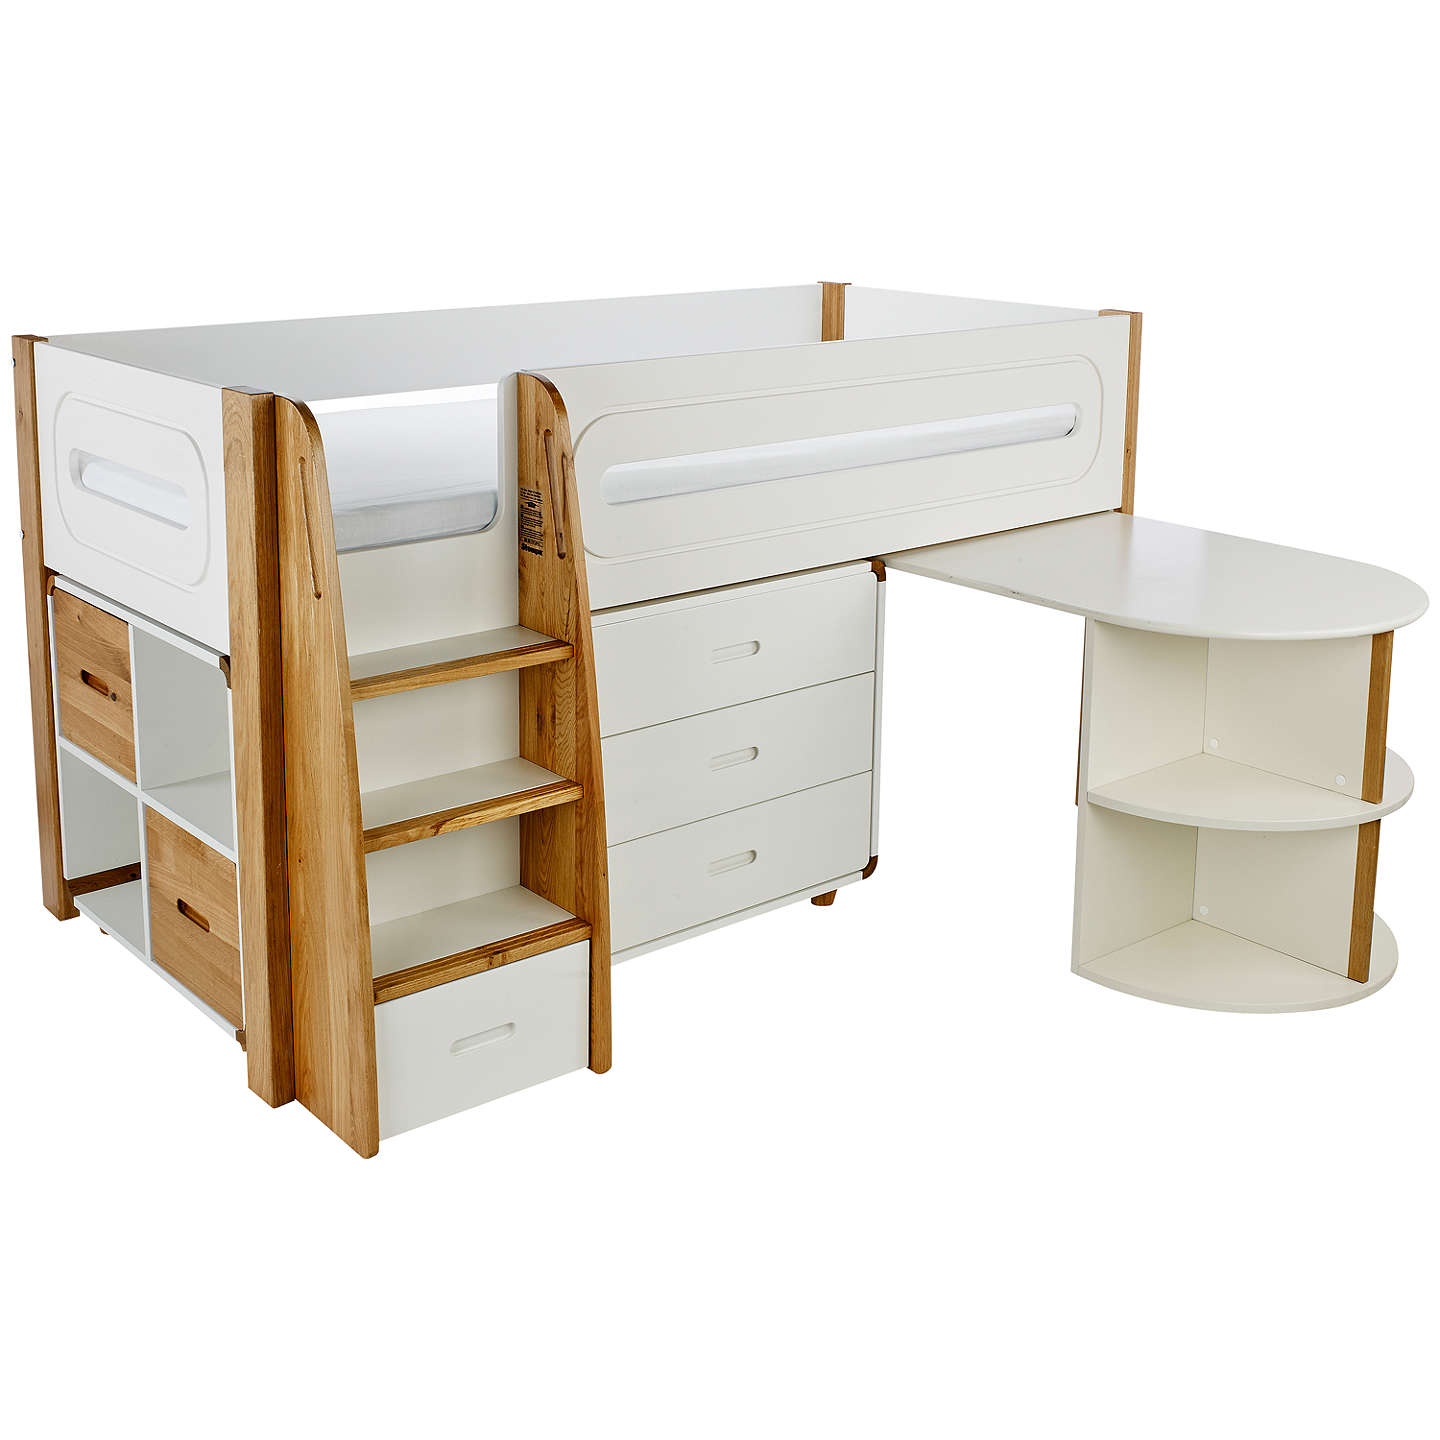 Stompa Curve Mid Sleeper Bed With Pull Out Desk 3 Drawer Chest And